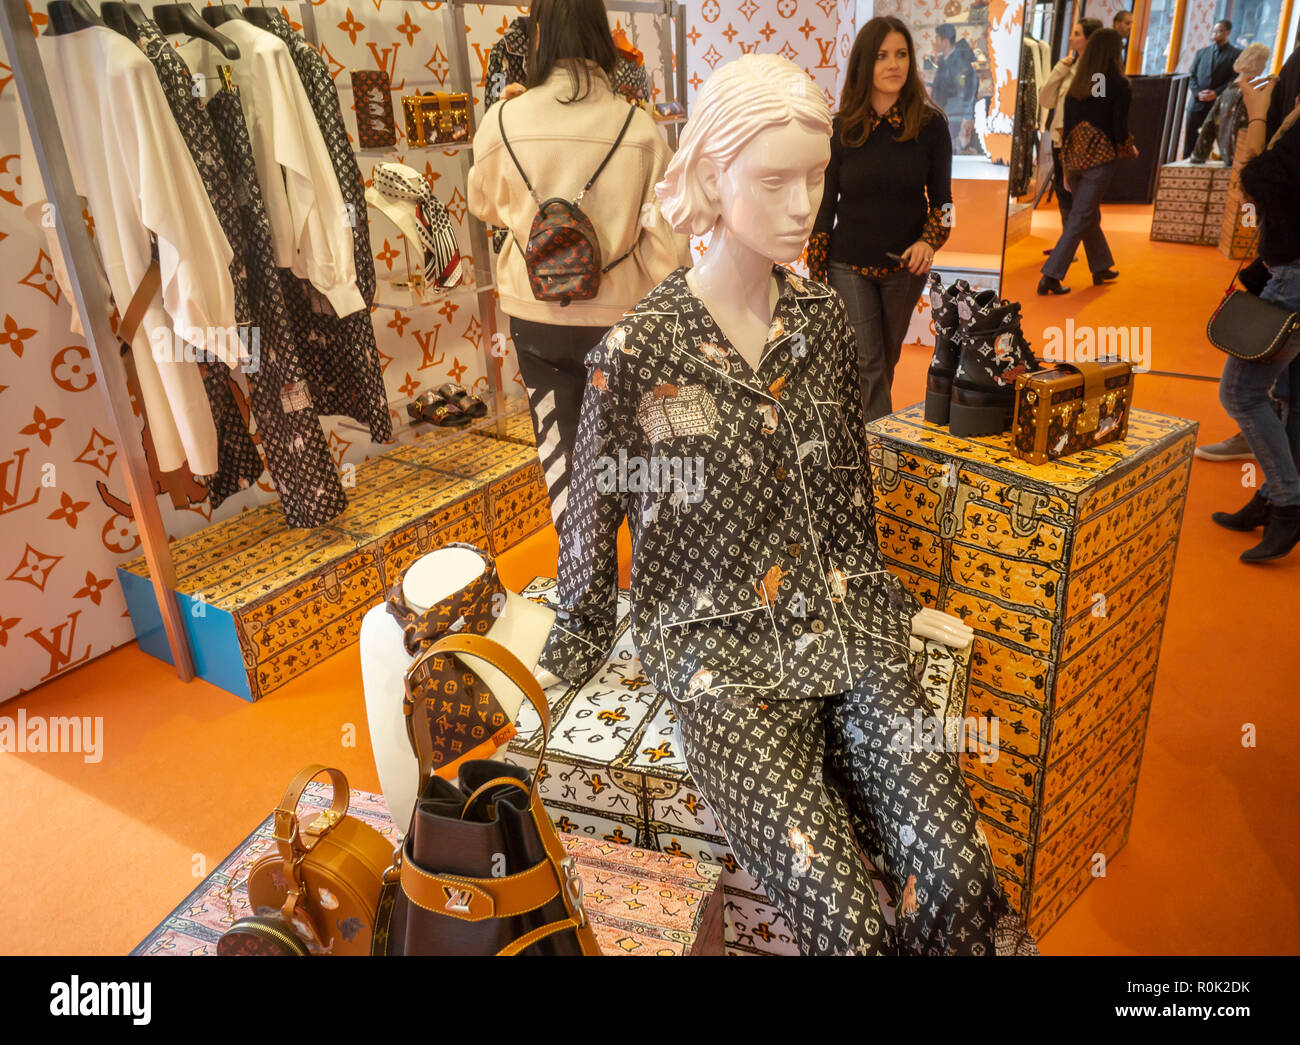 A cat-themed collaboration between he Louis Vuitton and fashion editor Grace Coddington opens a pop-up store in the trendy Meatpacking District in New York on Friday, October 26, 2018. Featuring Coddington's illustrations of her cats, the collection is named Catogram and the felines appear all over the leather goods, clothing shoes and even pajamas. (© Richard B. Levine) - Stock Image